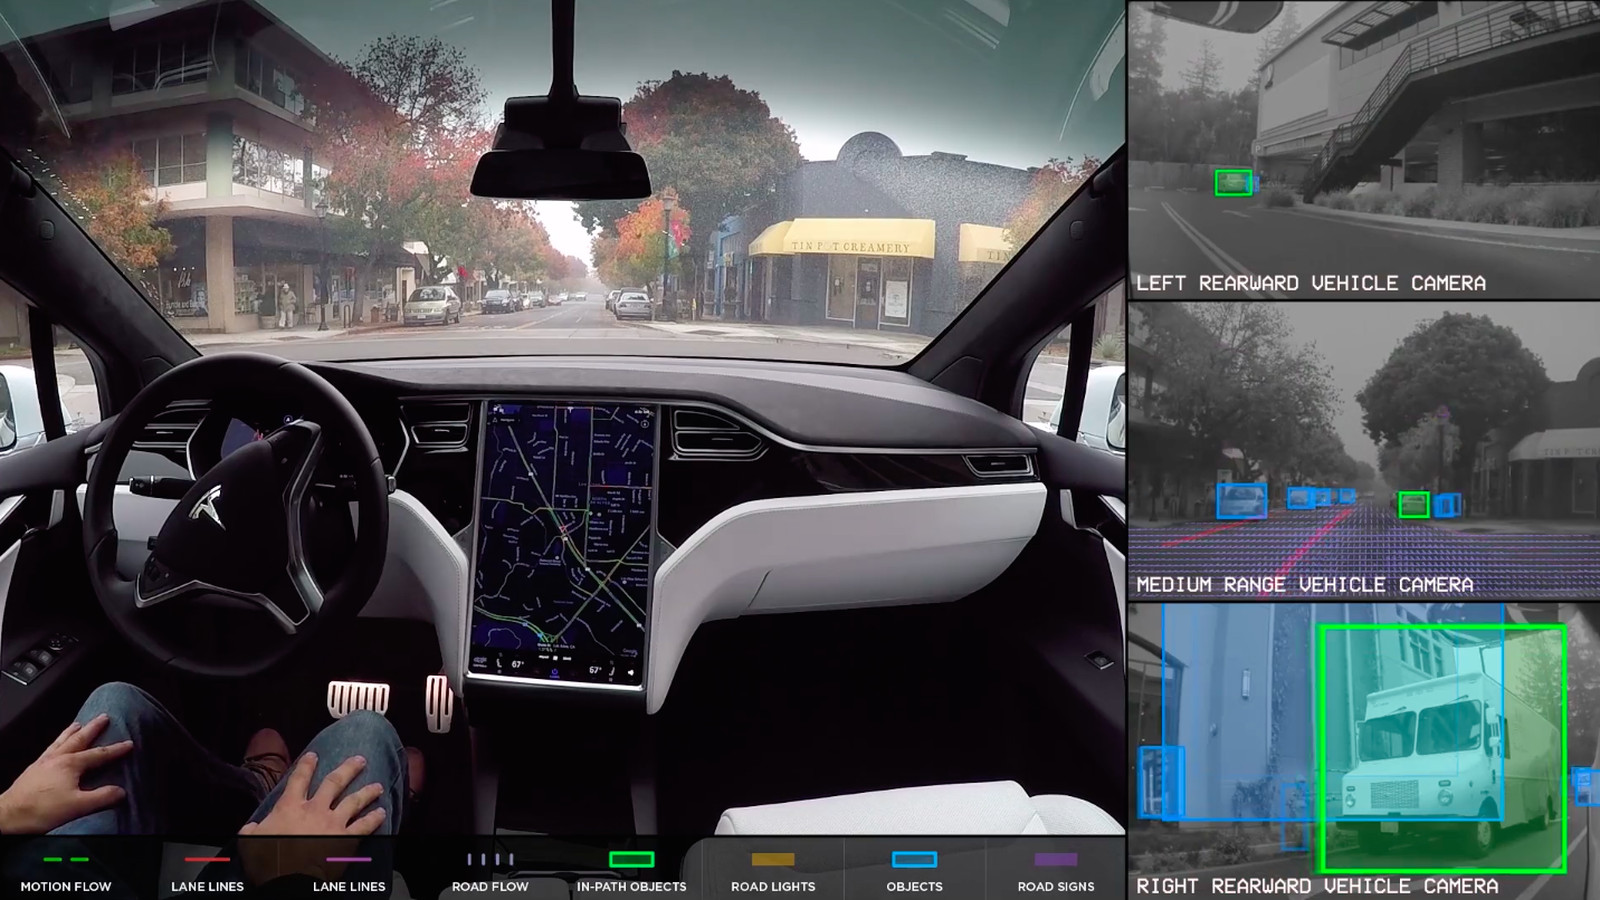 Tesla has been working on a backup plan in case its self-driving promises fail